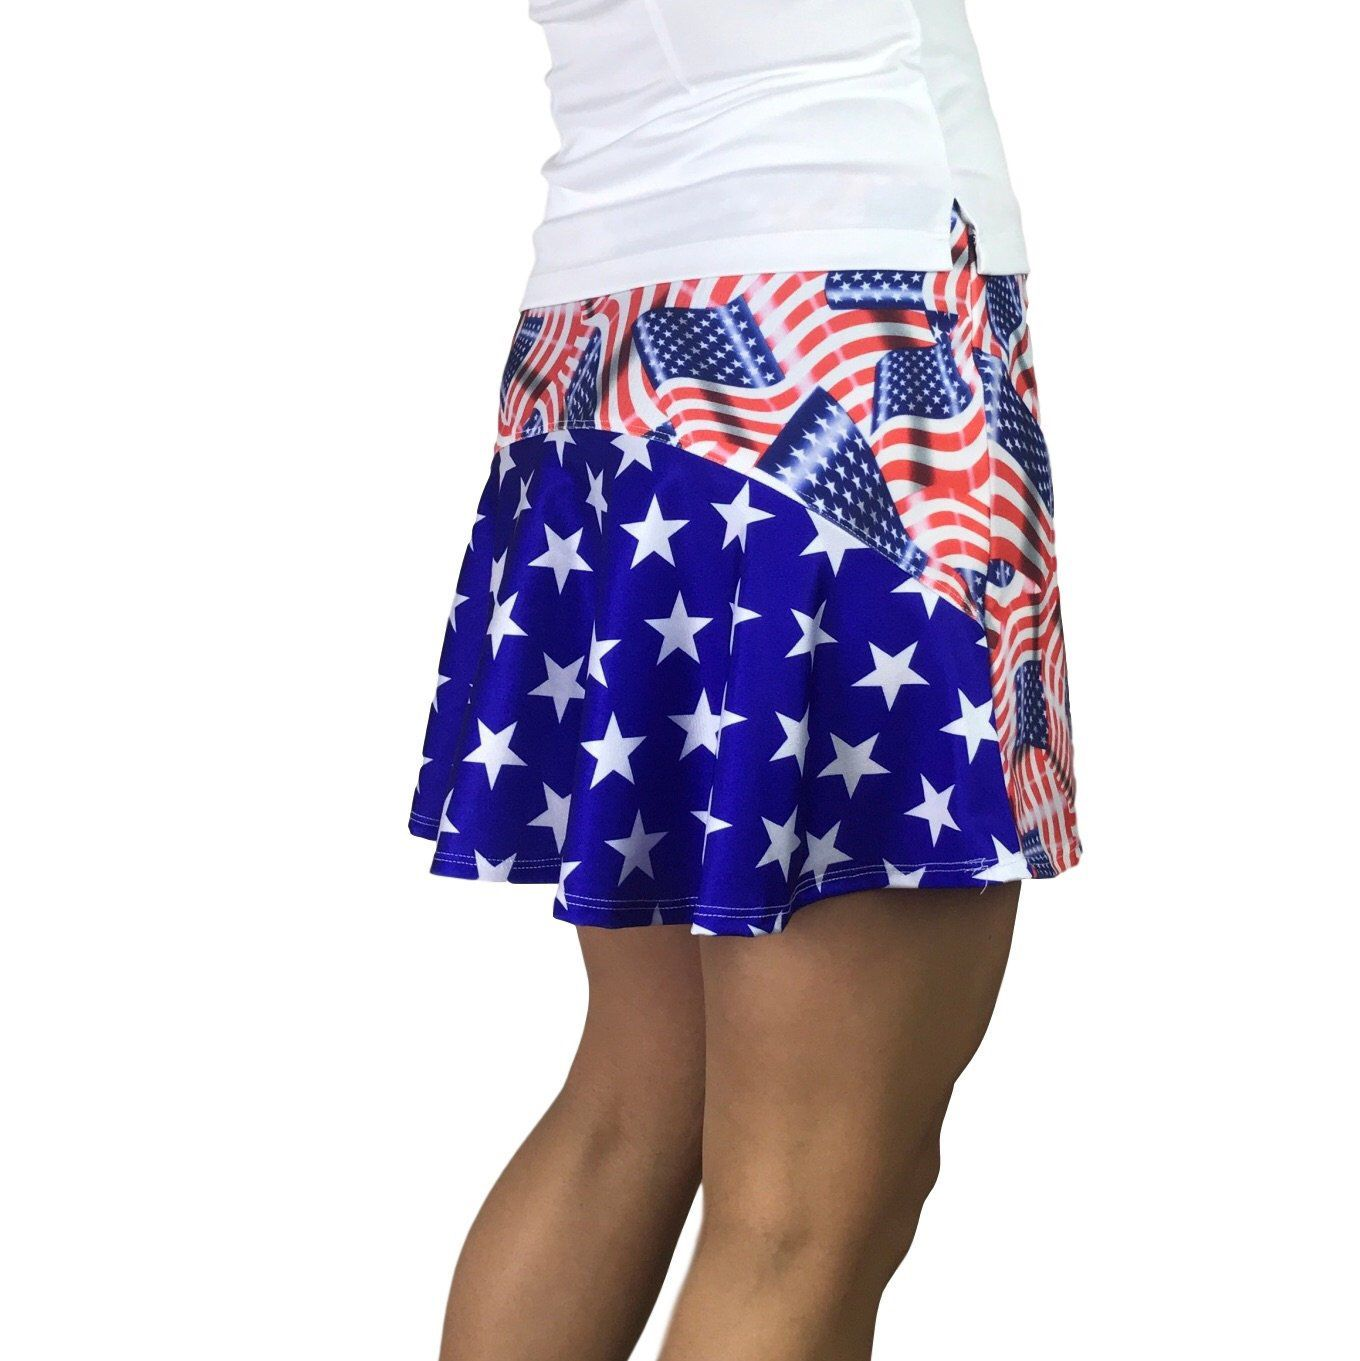 b73e09aed Excited to share this item from my #etsy shop: Flag w/ Stars Patriotic Athletic  Flutter Golf, Running, Tennis Skort w/ pockets- Golf Skirt